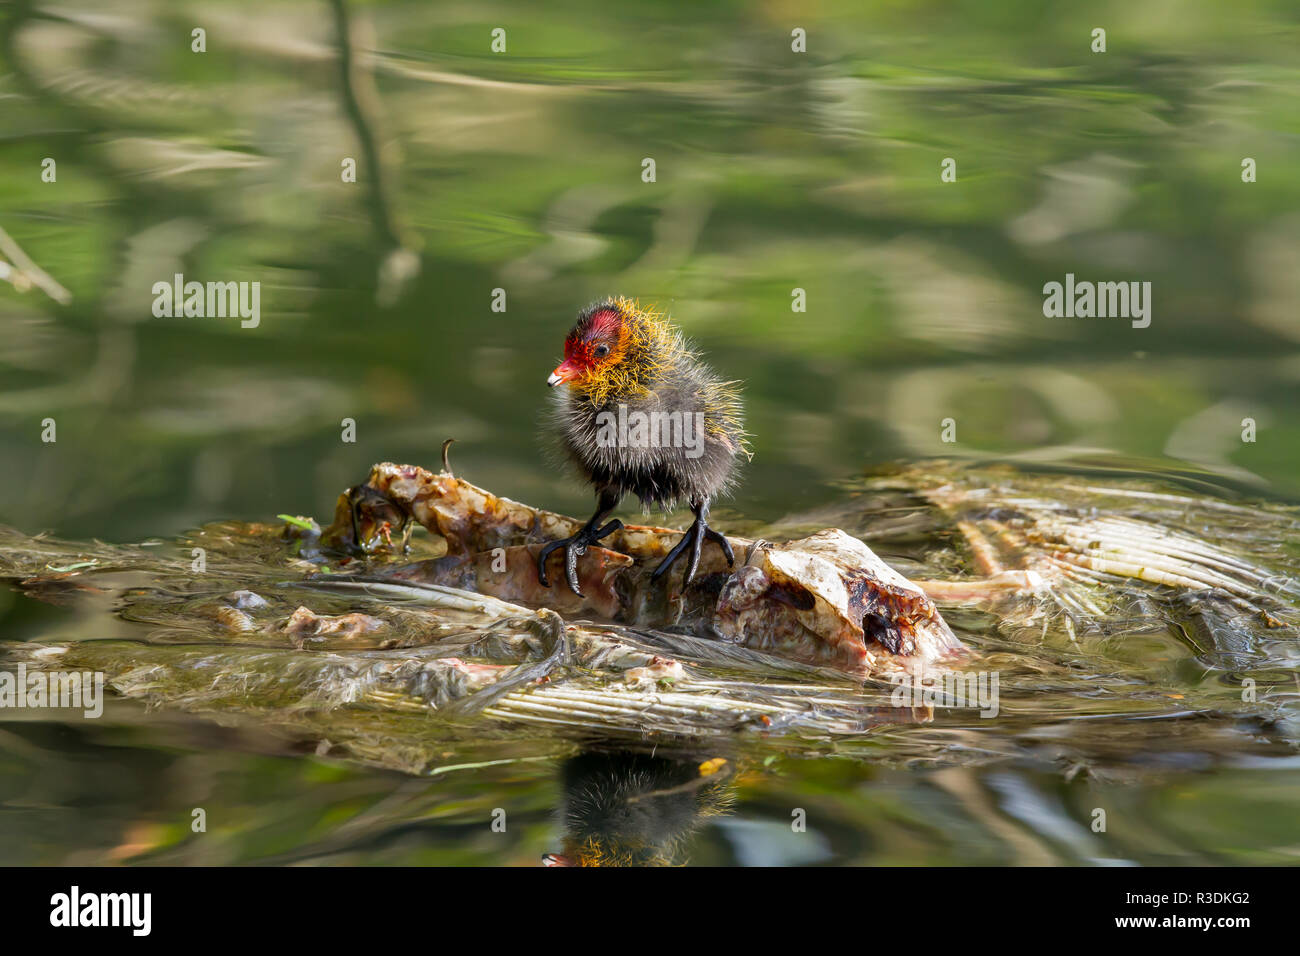 Circle of life - A Eurasian coot chick riding a carcass of another sea bird in a lake oblivious to raft it is using. - Stock Image